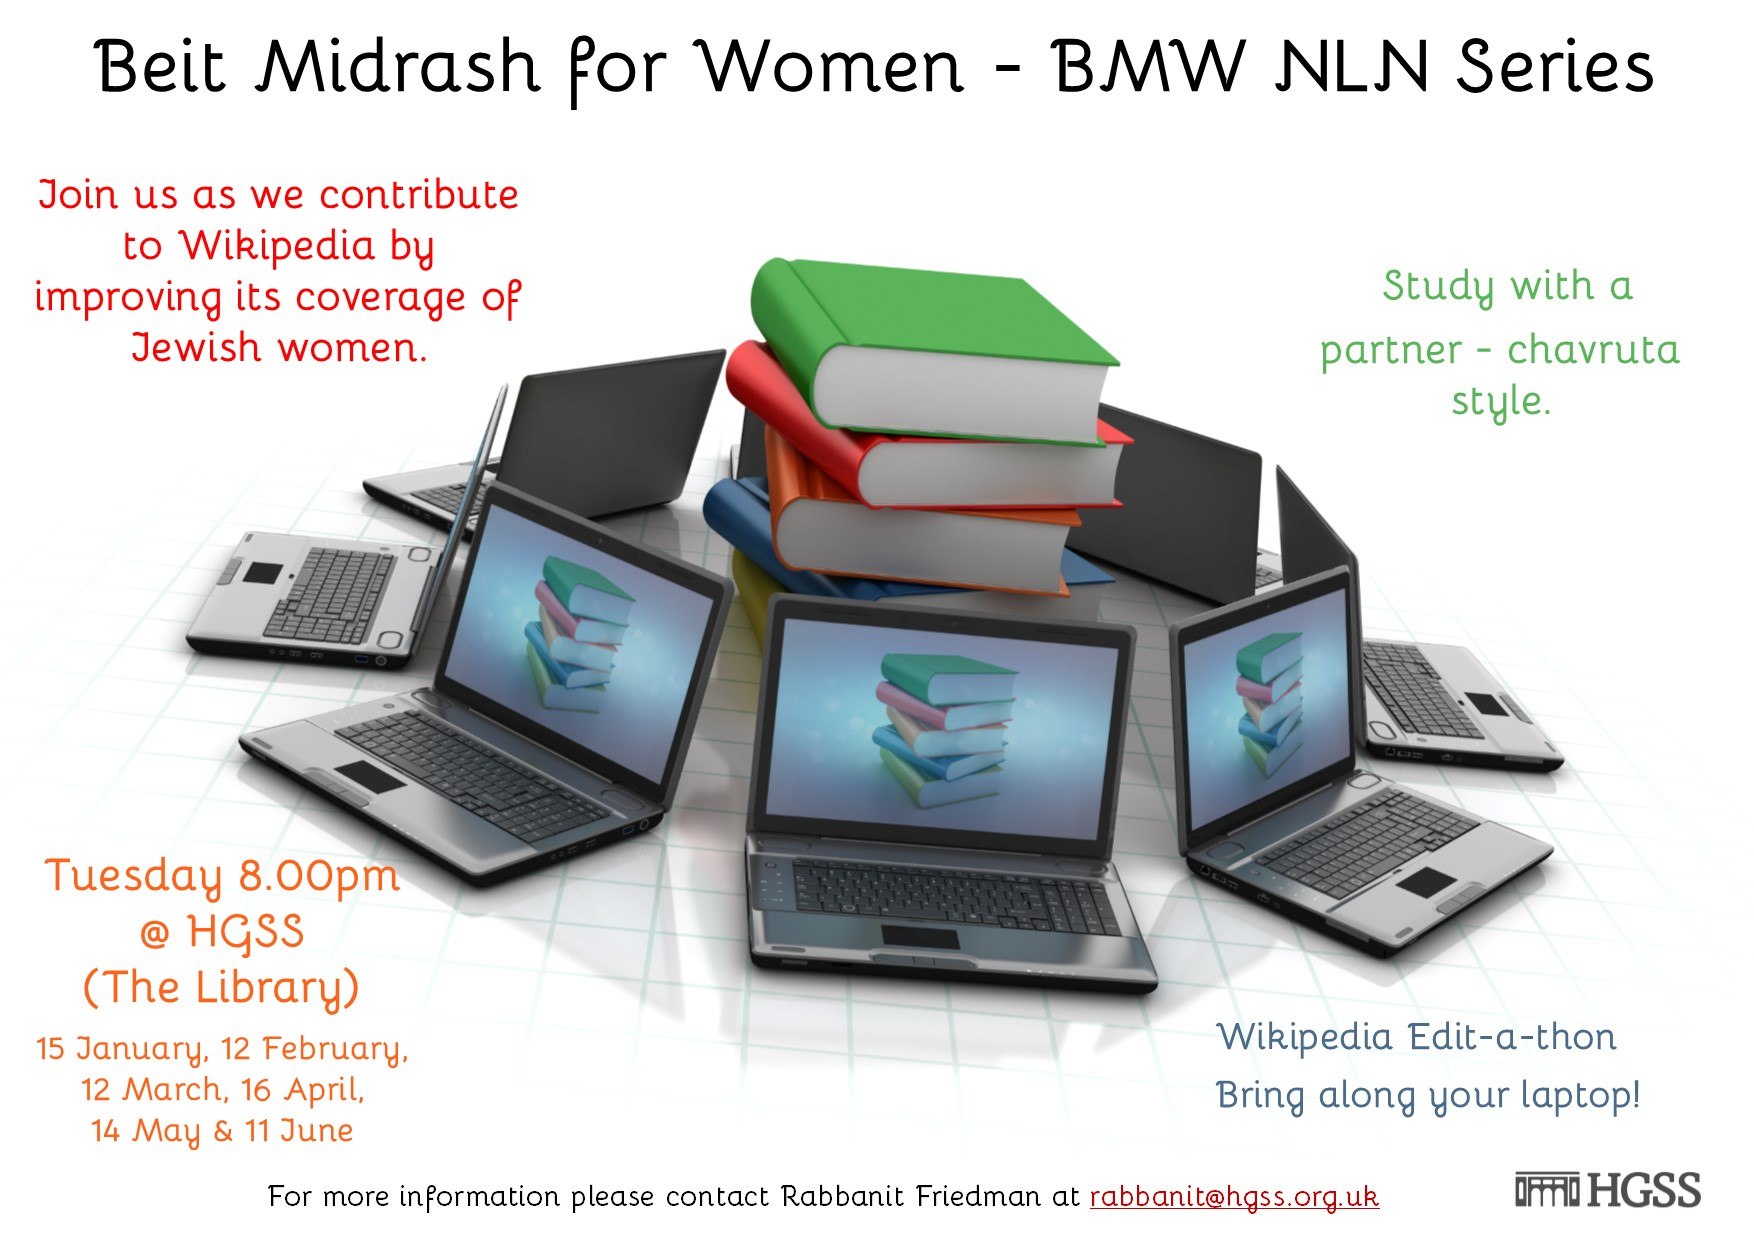 Beit Midrash for Women @ The Library, HGSS